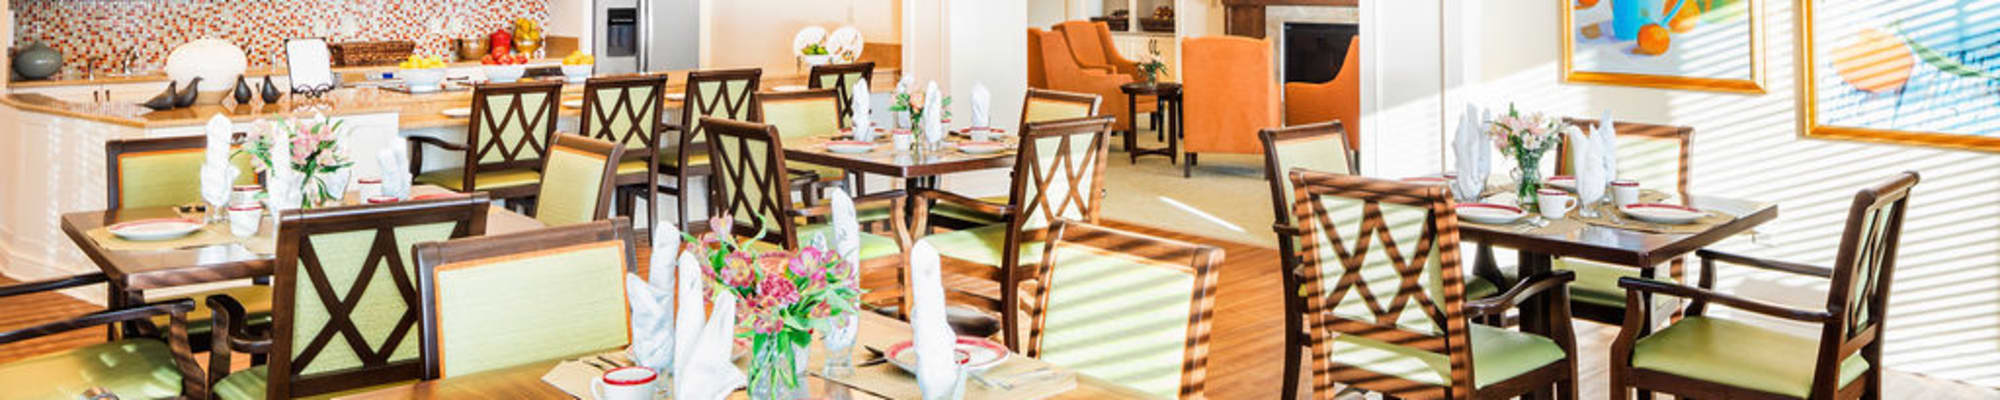 Dining options at Azpira at Windermere in Windermere, Florida